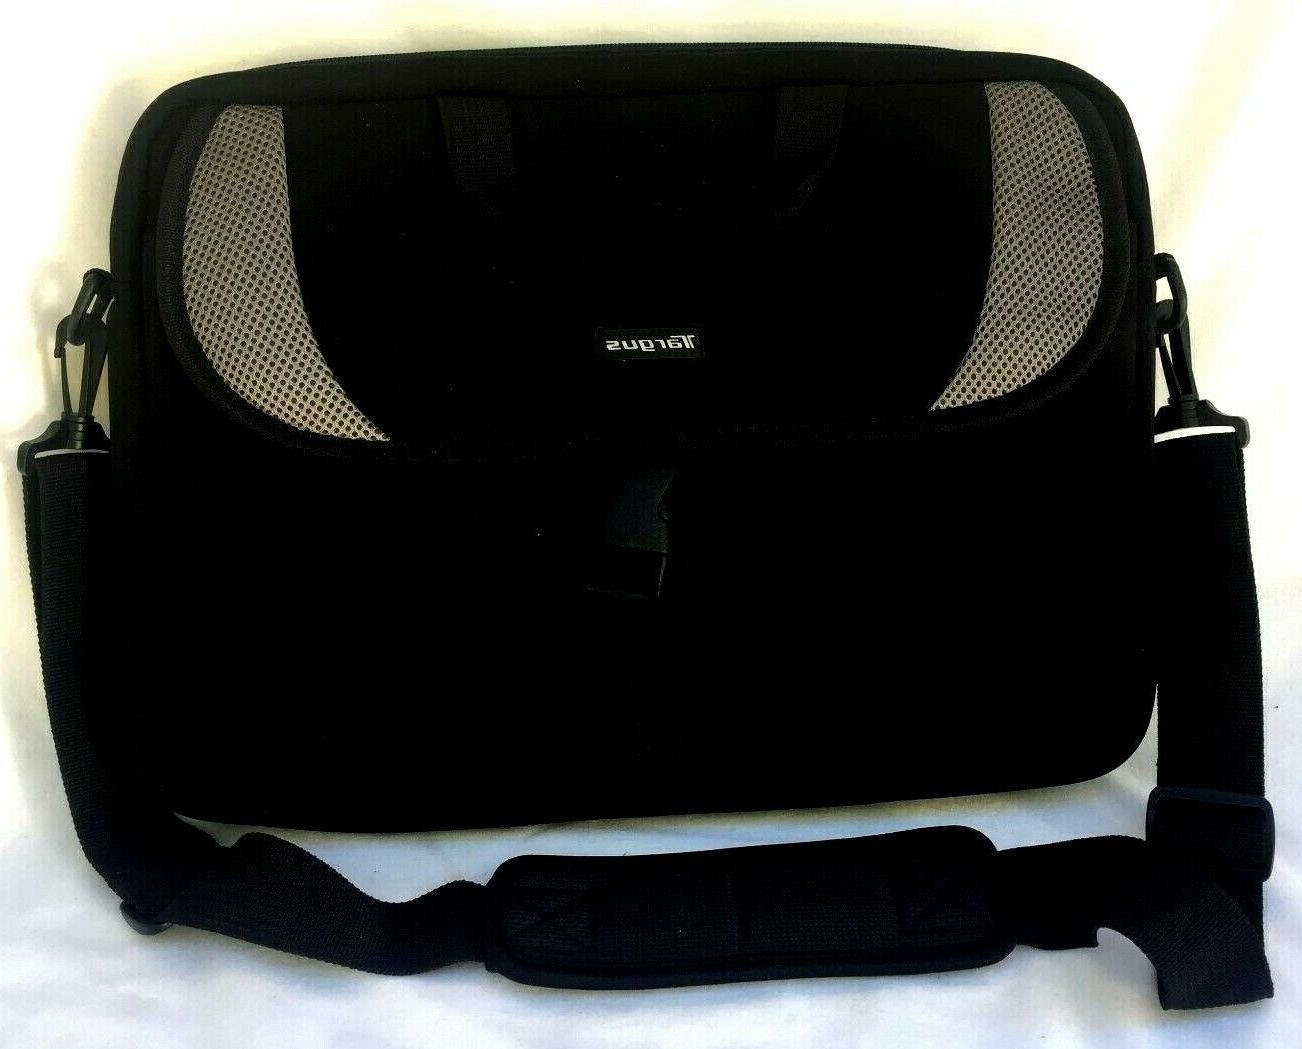 classic clamshell laptop bag case fits 12